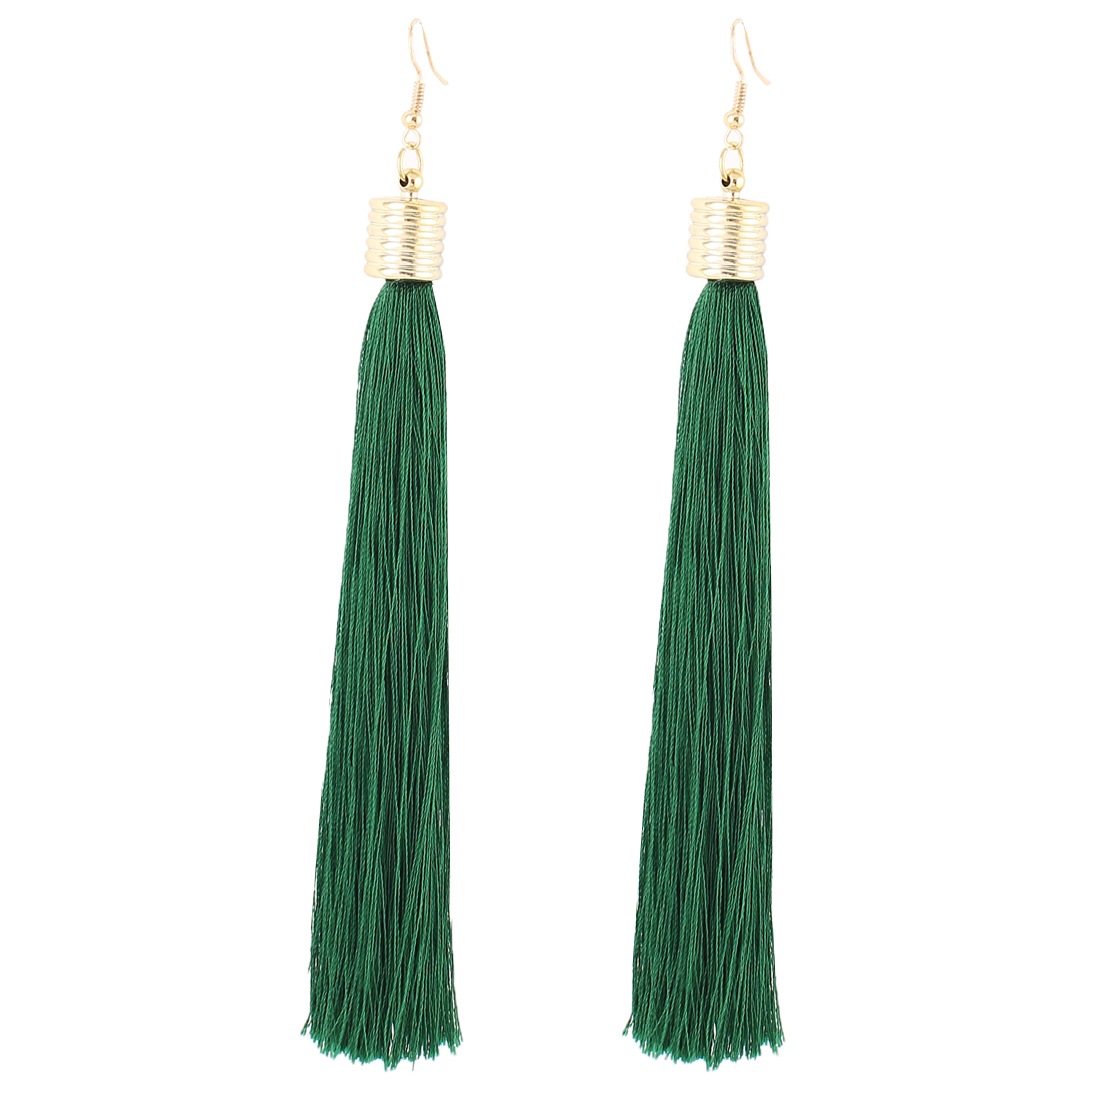 Pair Green Tassel Pendant Dangling Gold Tone Metal Ear Hooks Drops Earrings Eardrops for Woman